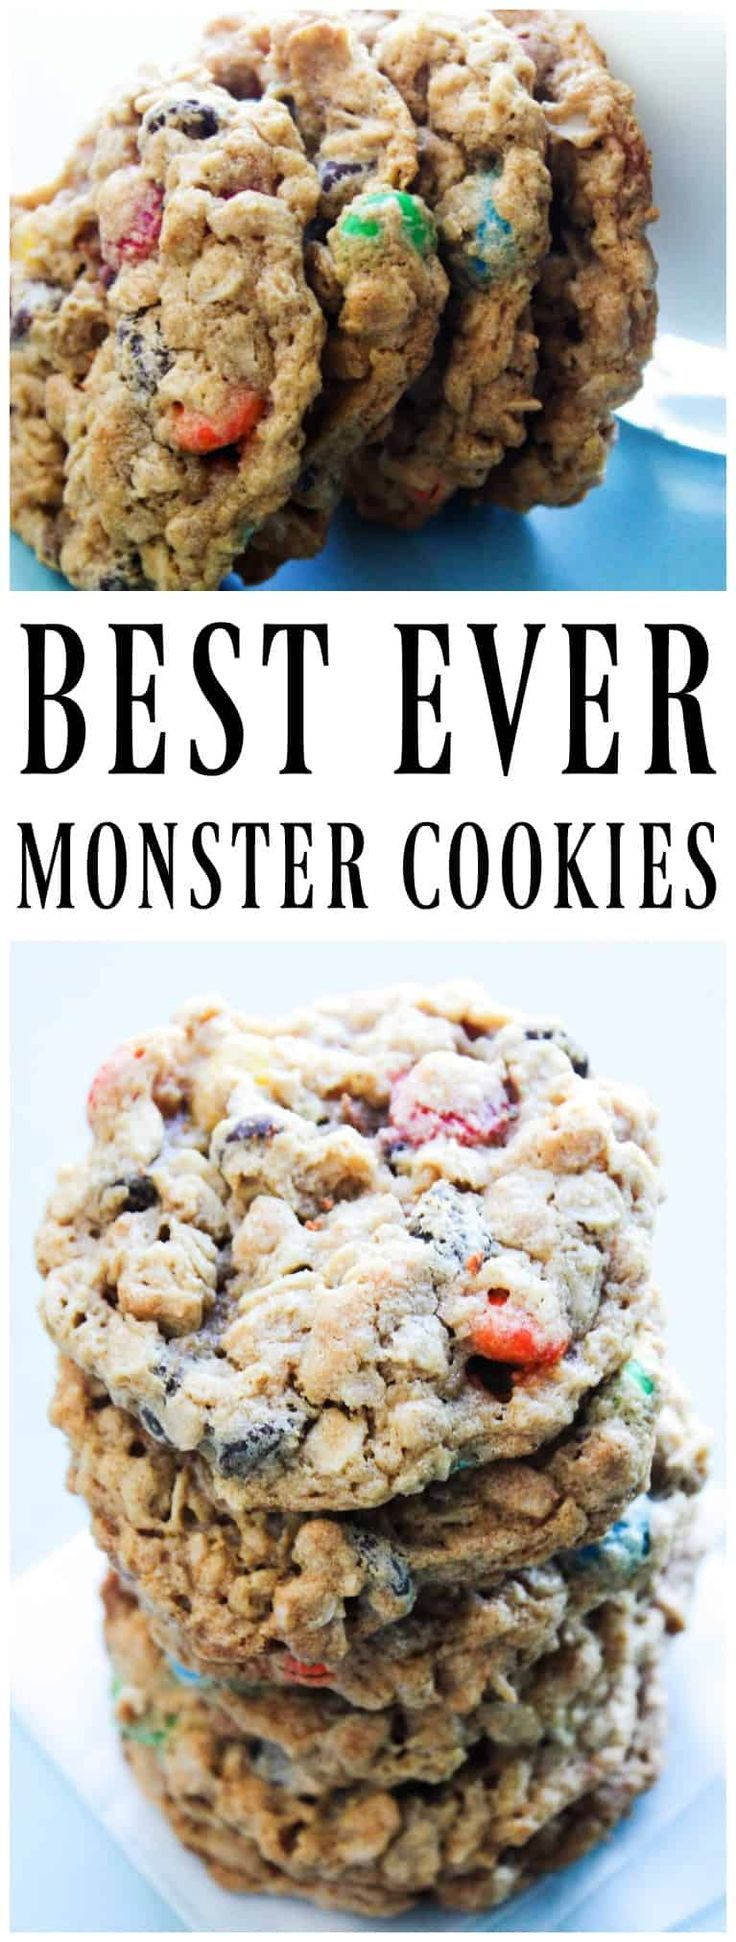 BEST EVER MONSTER COOKIES - loaded with M&M candies, peanut butterand oats, these are soft, chewy and irresistible. Making them the best cookie ever. #cookies #oatmeal #peanutbutter